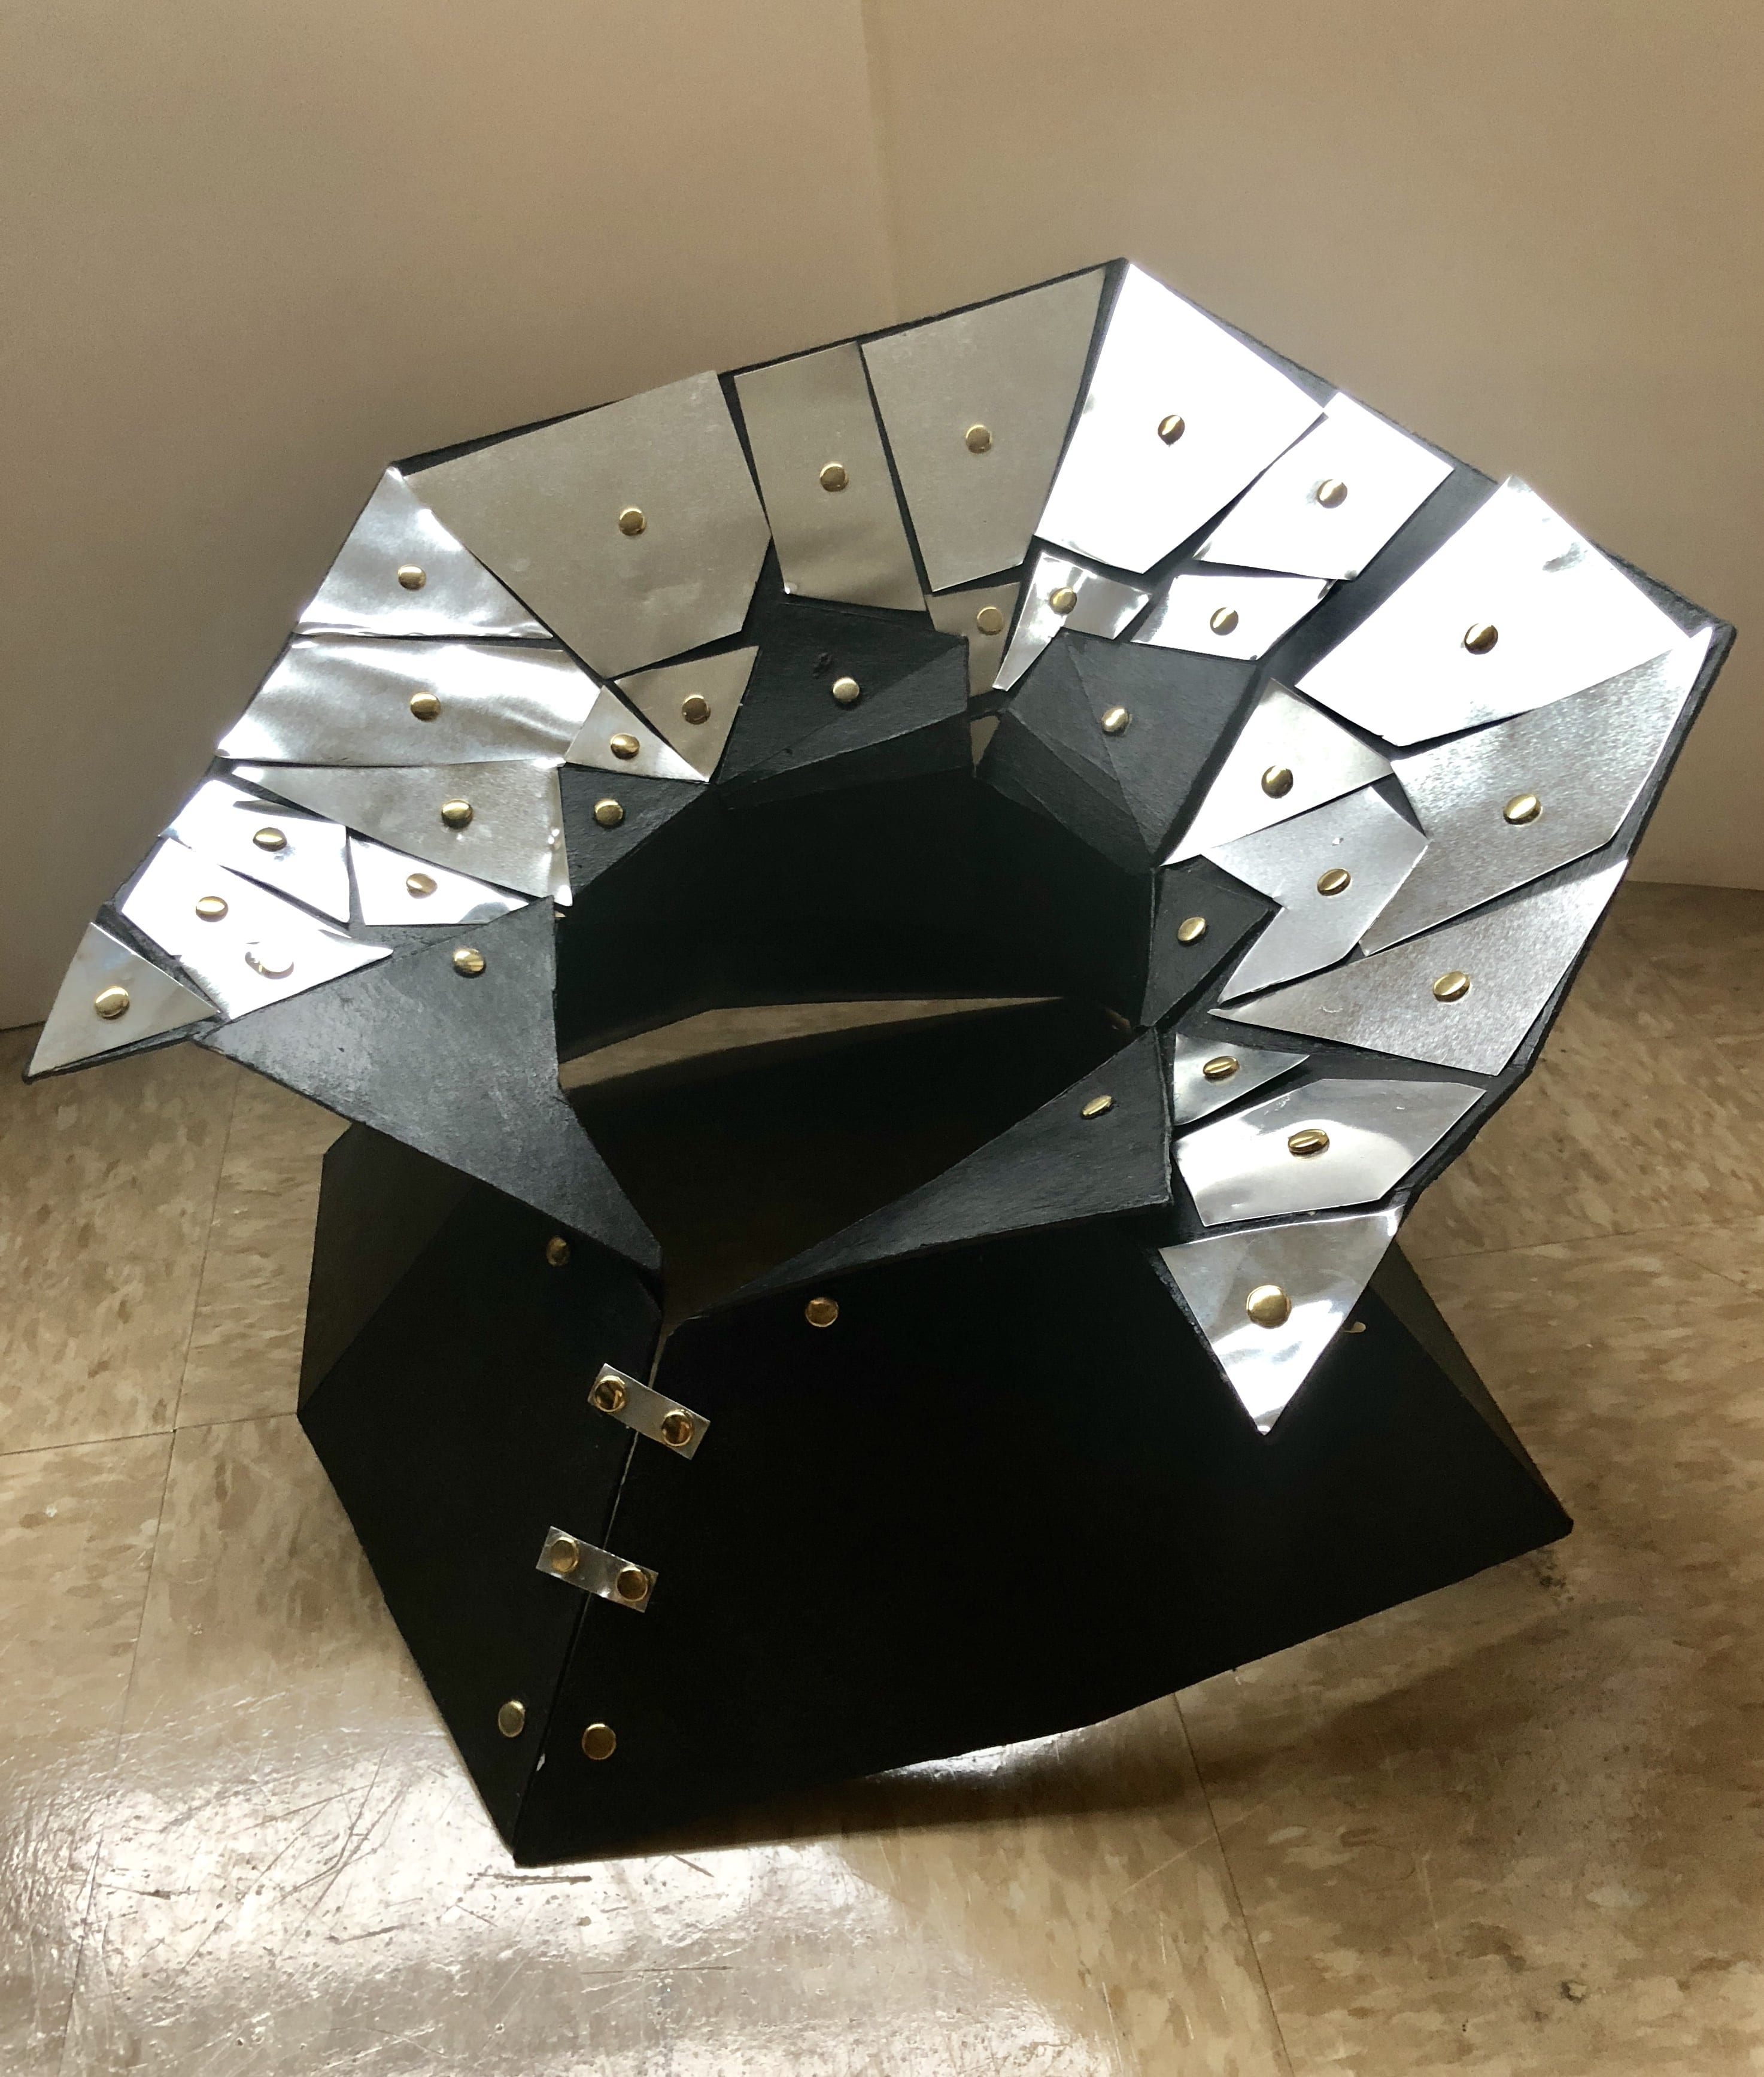 Space & Materiality: Project #2: Platonic Solids Body Extension: Final Form